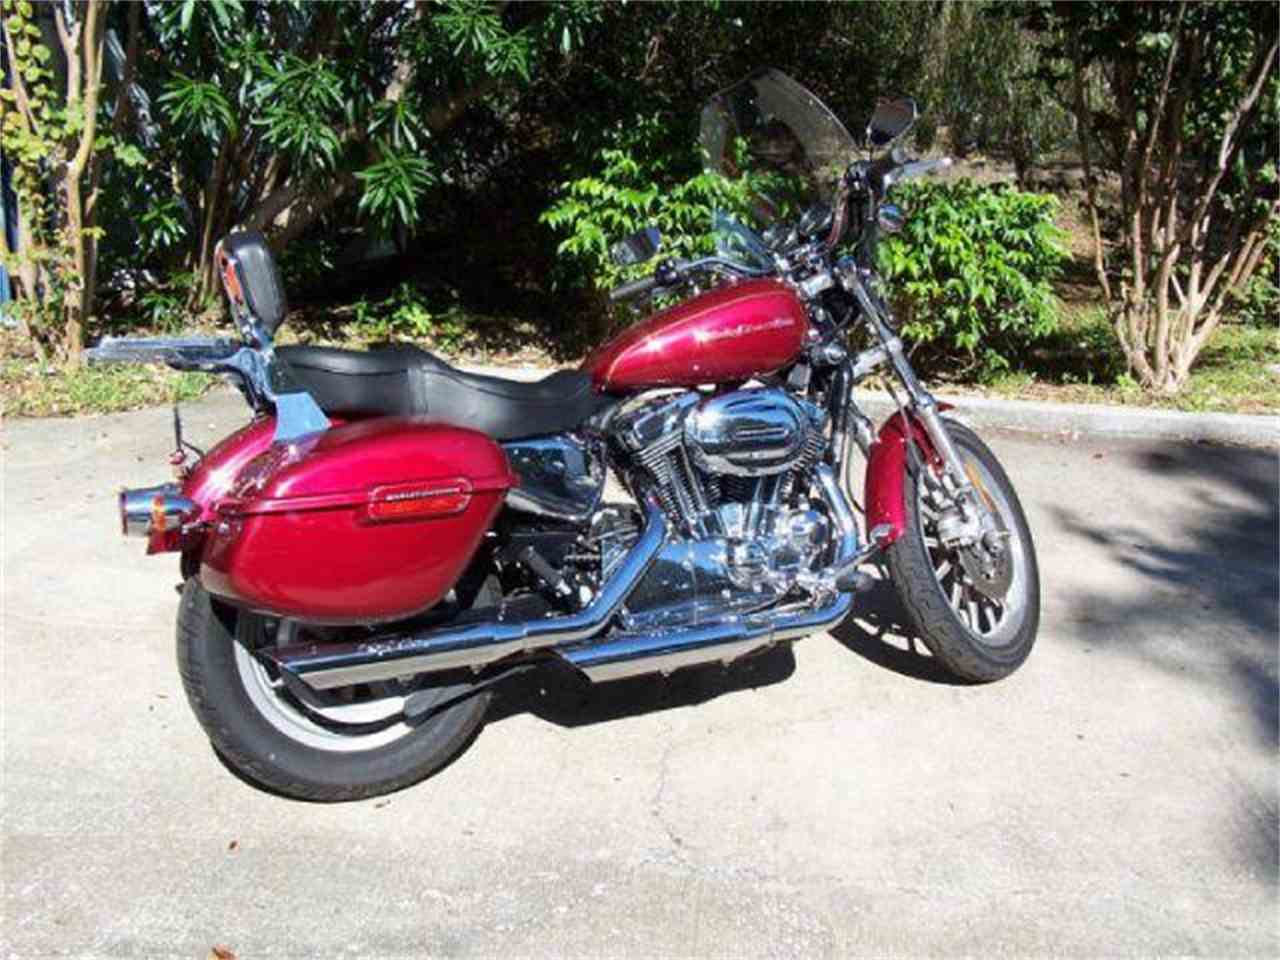 Large Picture of 2004 Harley-Davidson Sportster located in Clearwater Florida - $6,300.00 Offered by PJ's Auto World - 91G4